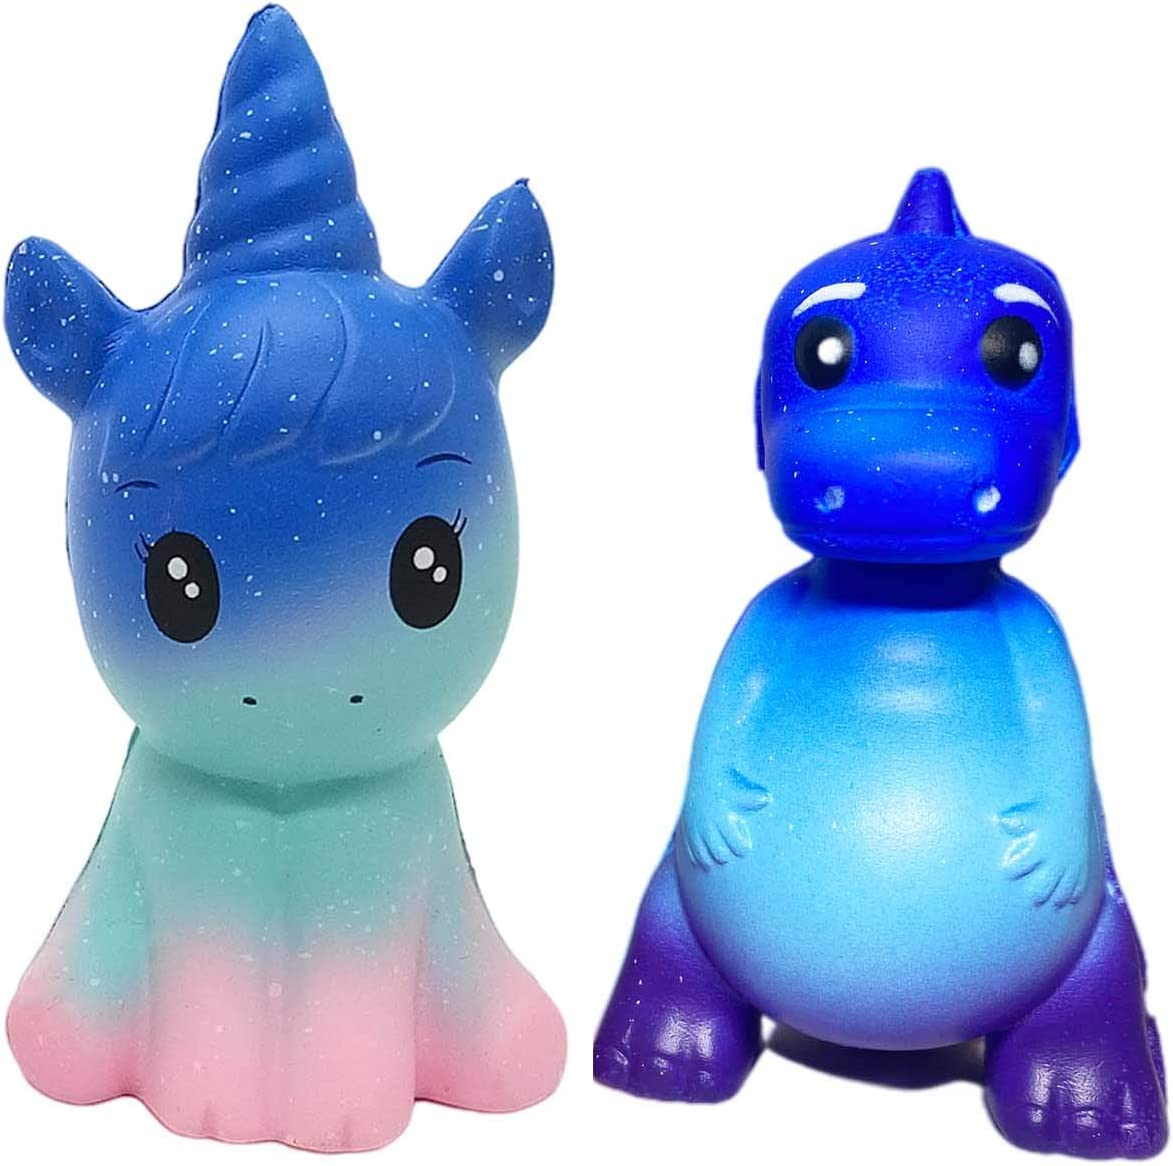 ASMFUOY 2 Pcs Galaxy Unicorn Dinosaur Slow Rising Squishies, Cute Birthday Gift for Kids, Stress Relief Squeeze Toys